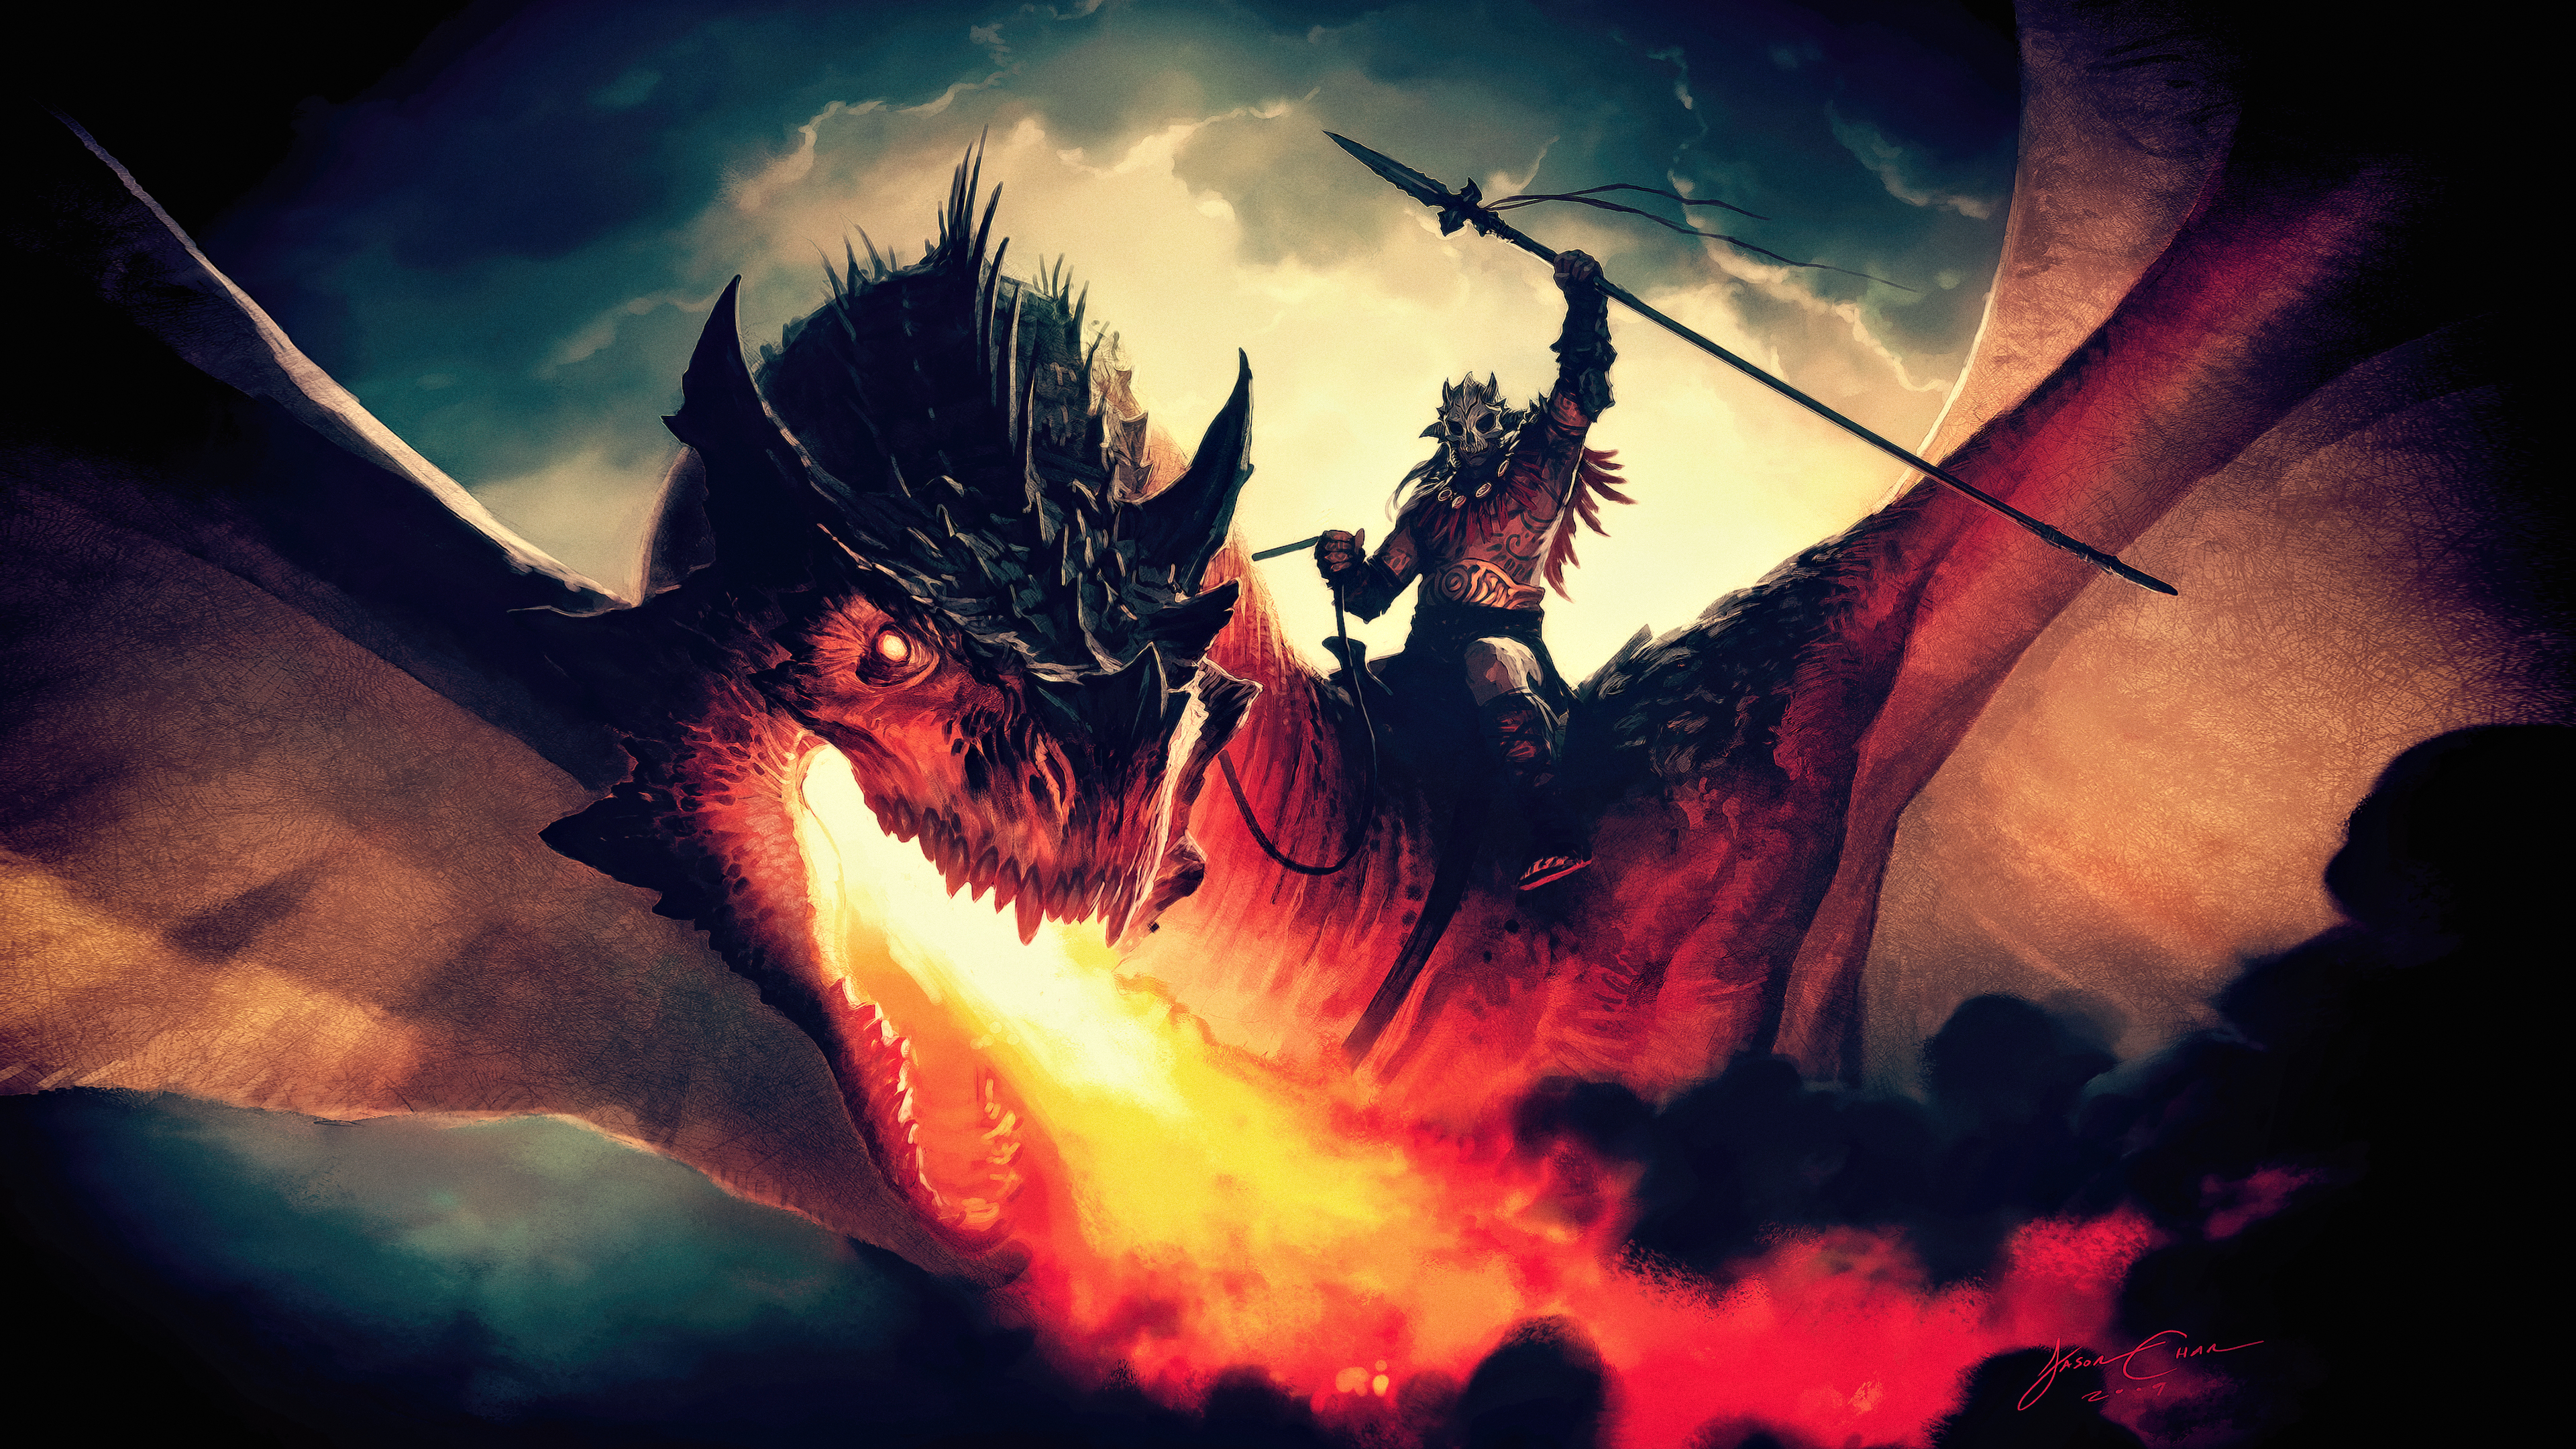 Magical Fantasy Hd Wallpapers That Will Take Your Breathe: Magic The Gathering Arena Dragon Concept Art Magic The